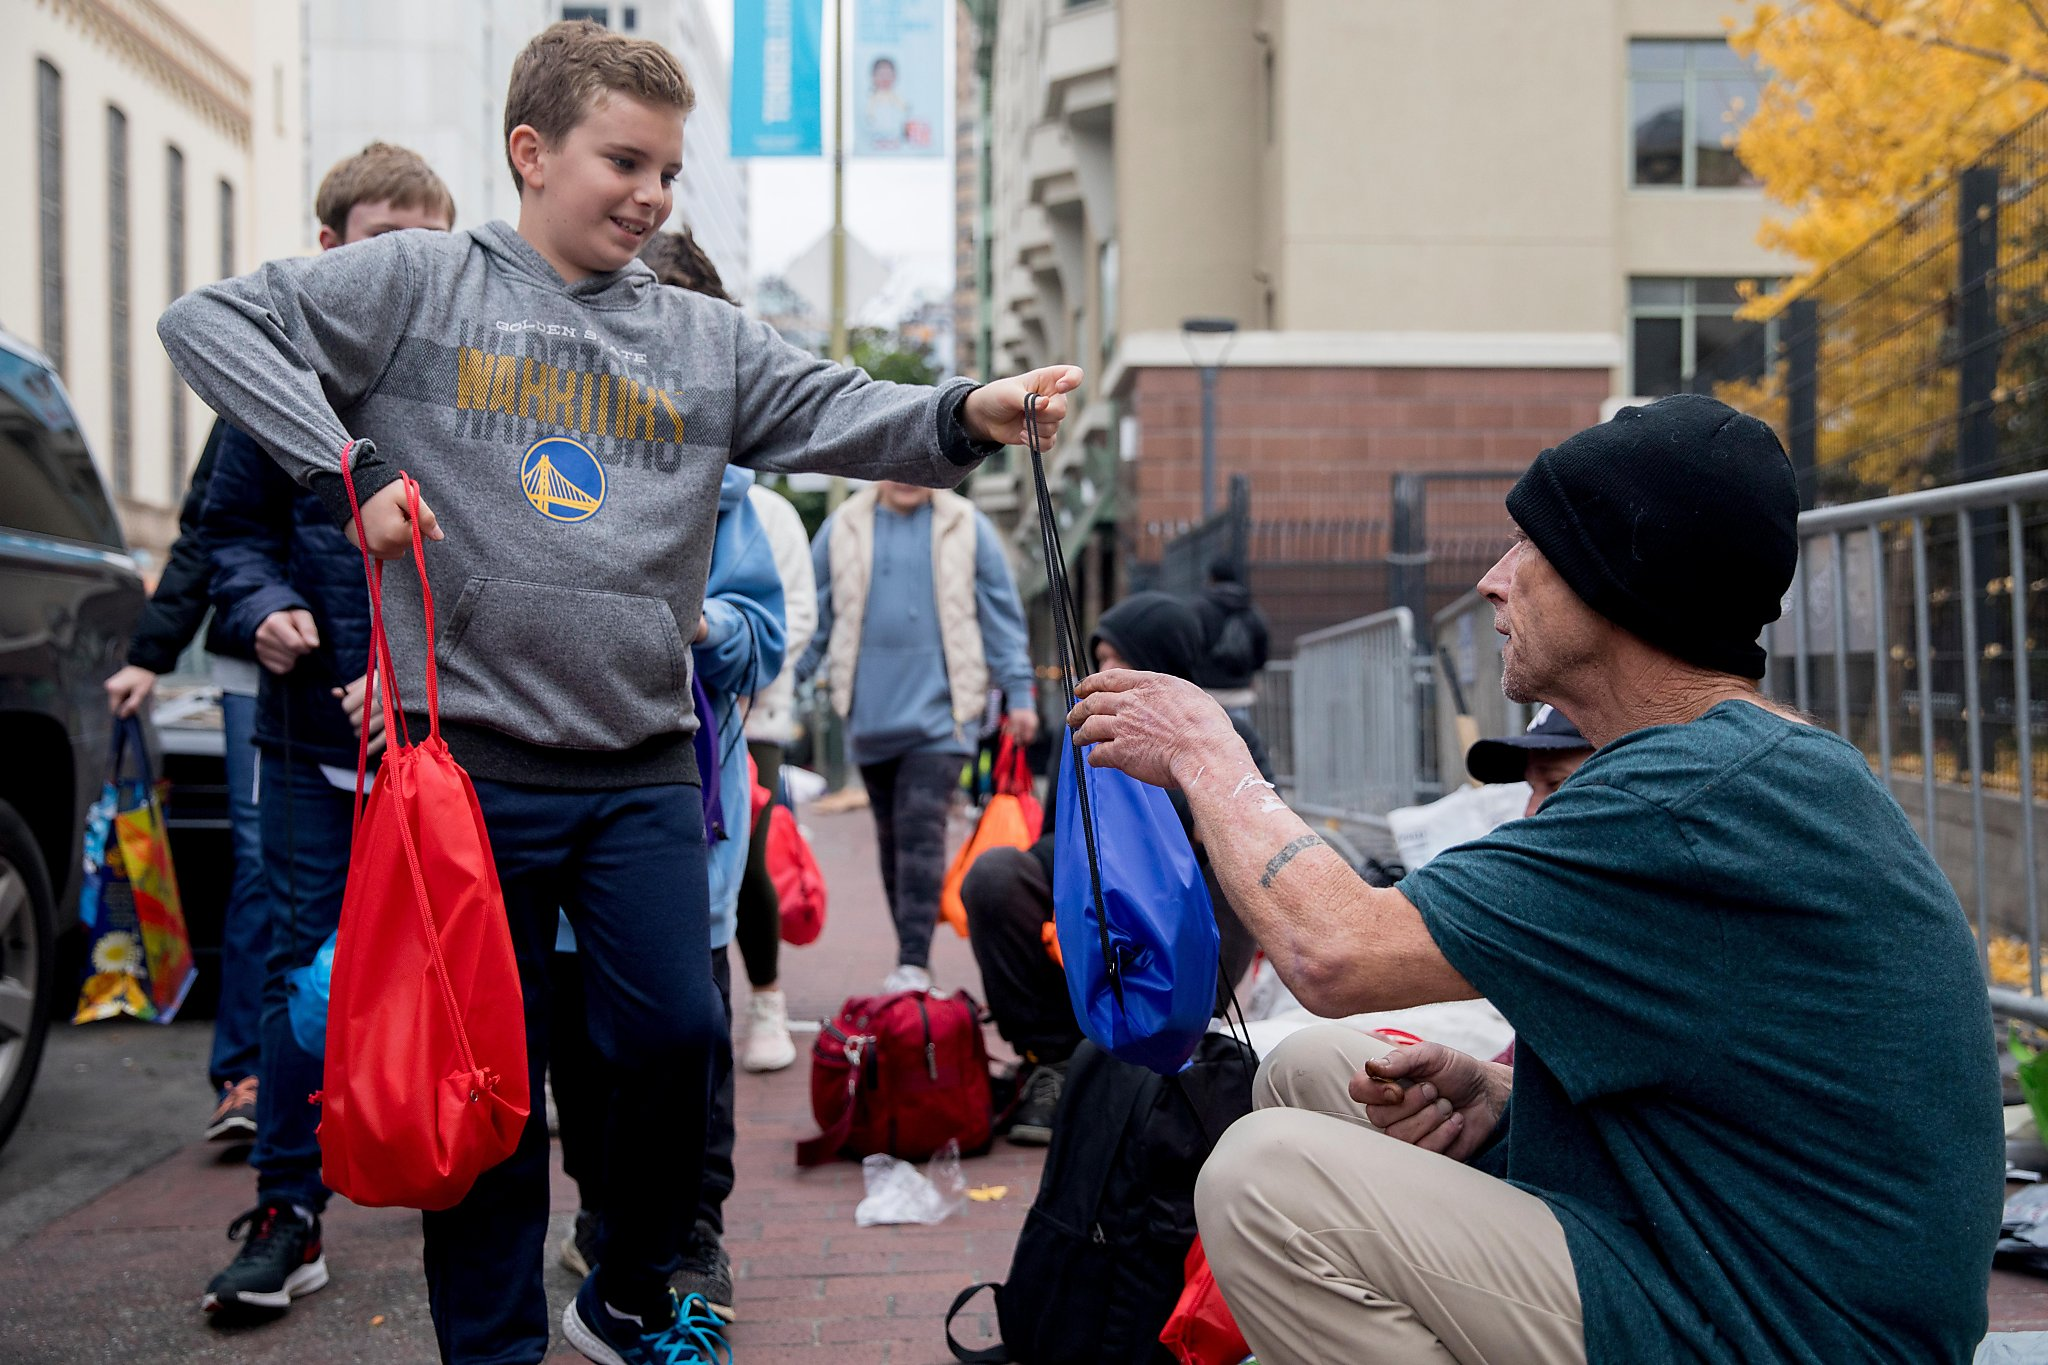 Families' sandwiches for homeless a small gift but big sign of concern